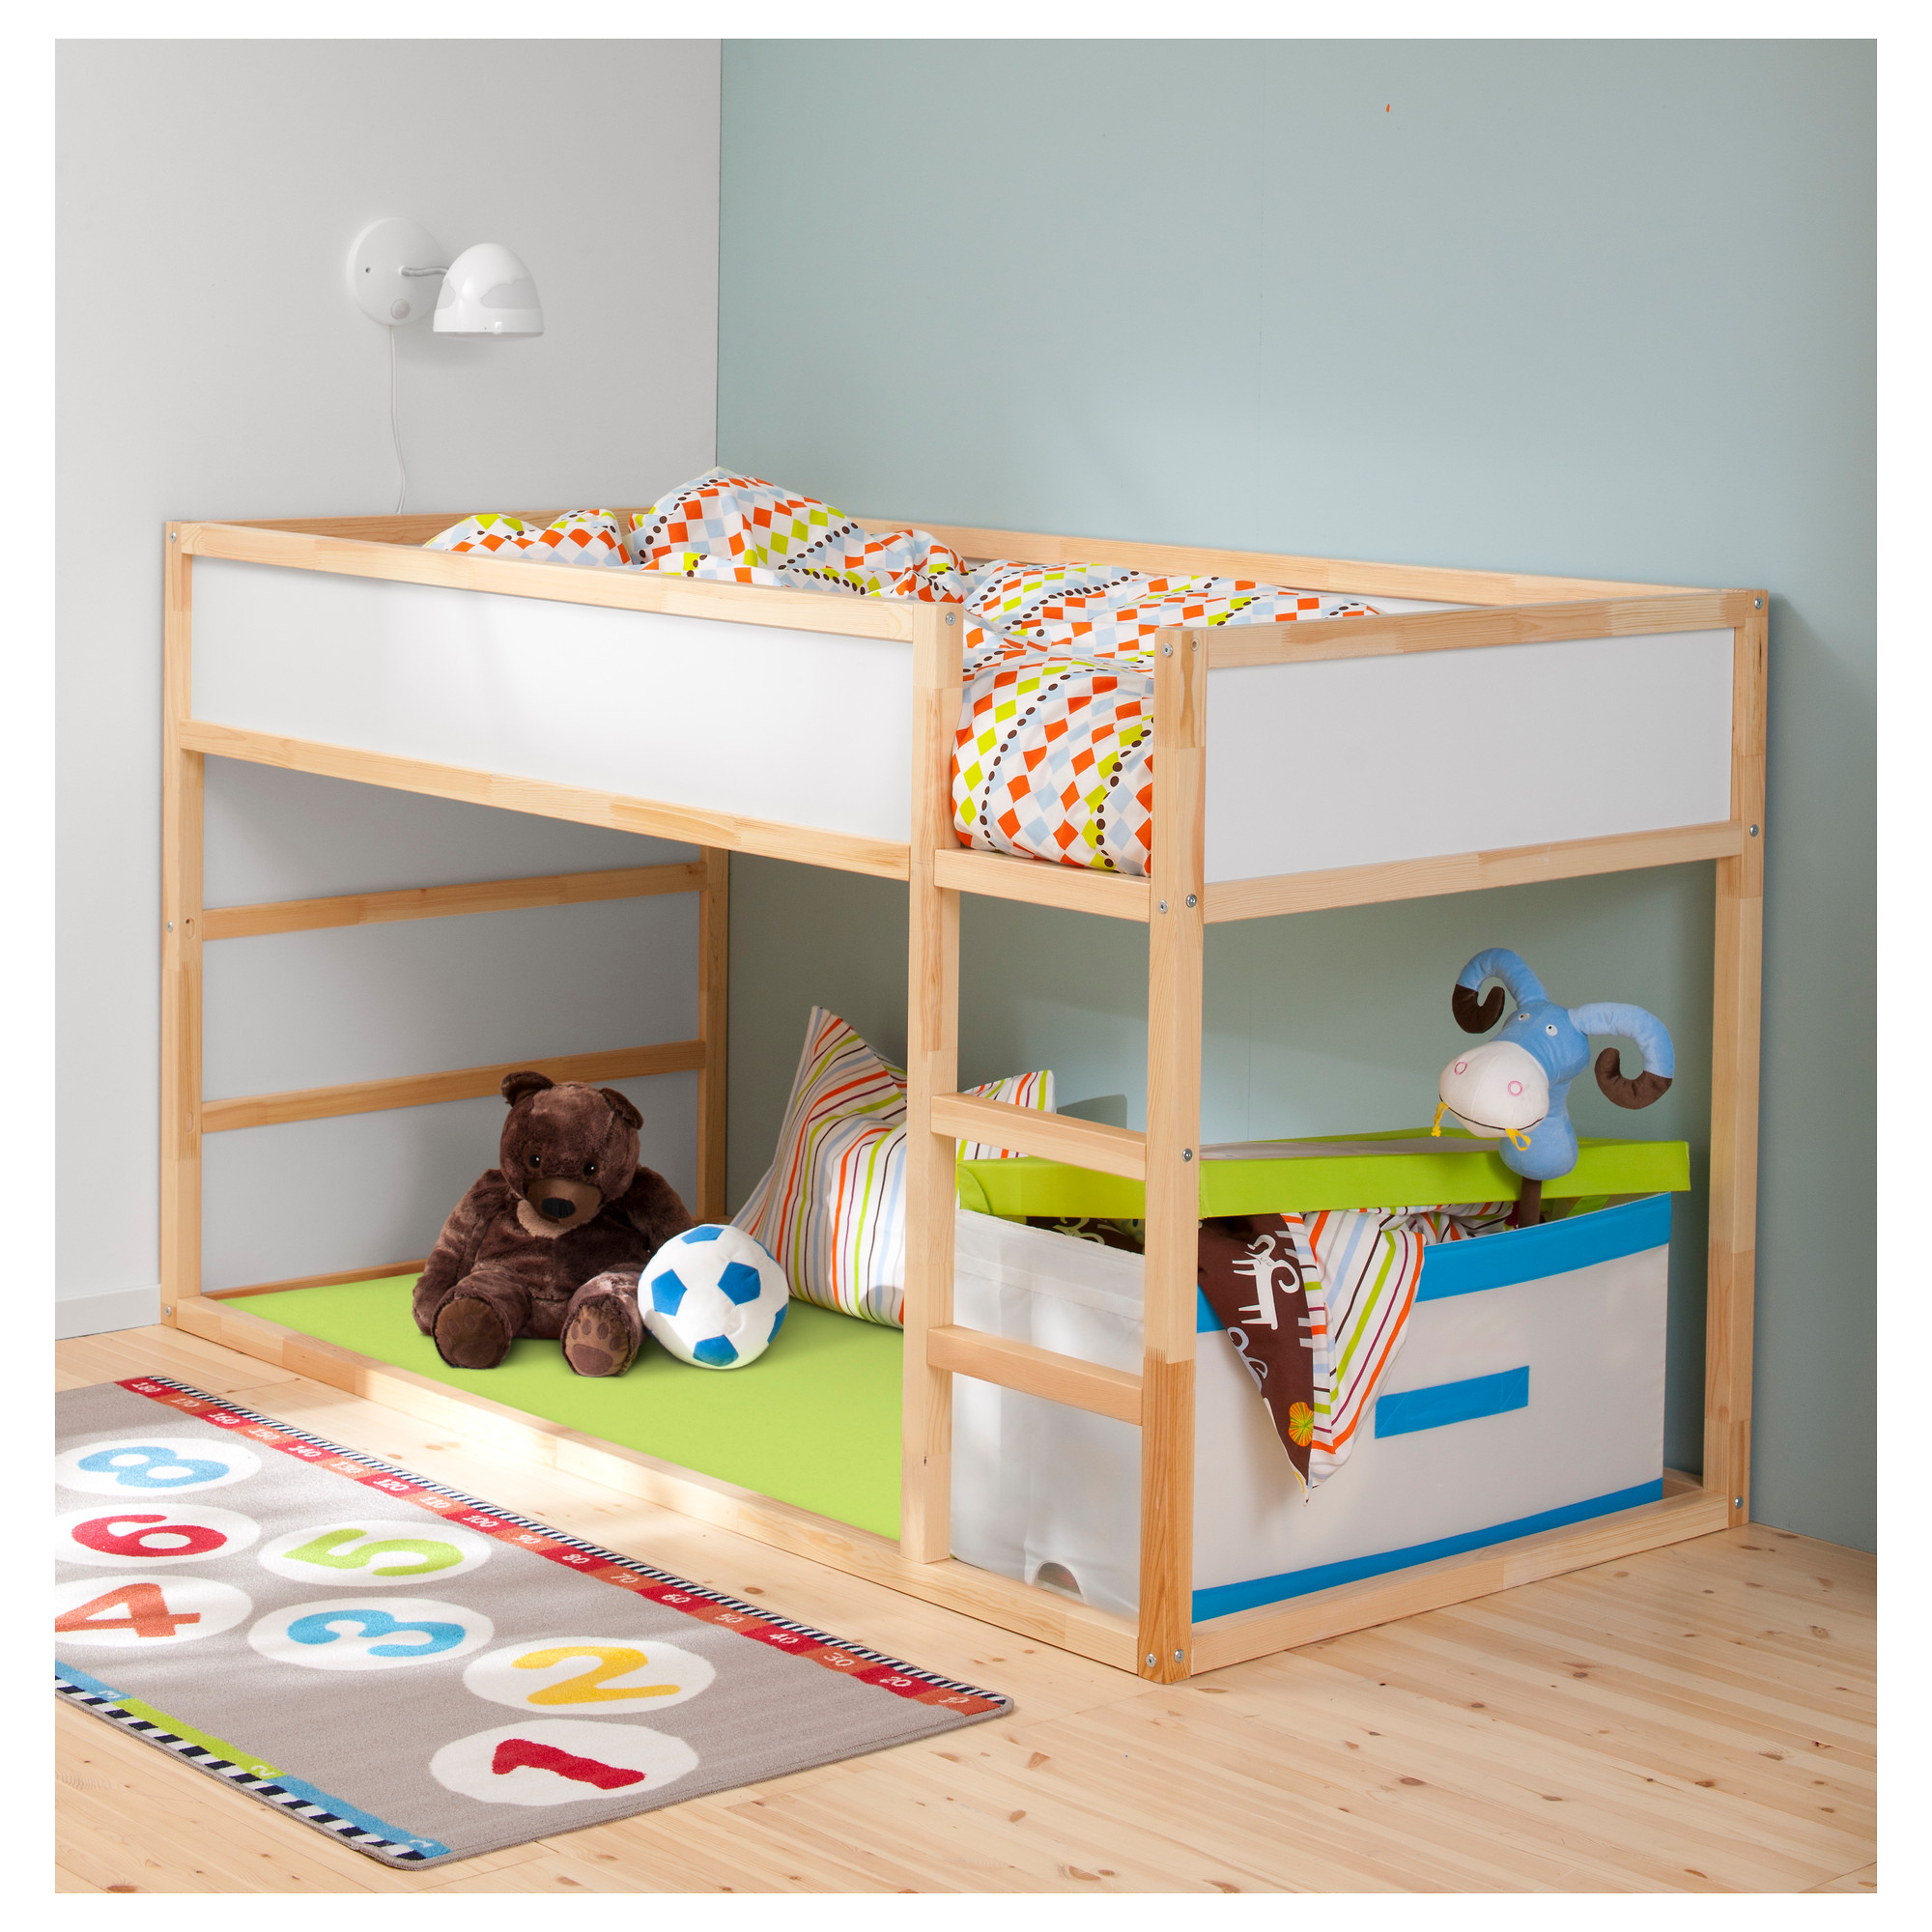 Kid Fun Bed Ikea Kids Loft Bed A Space Efficient Furniture Idea For